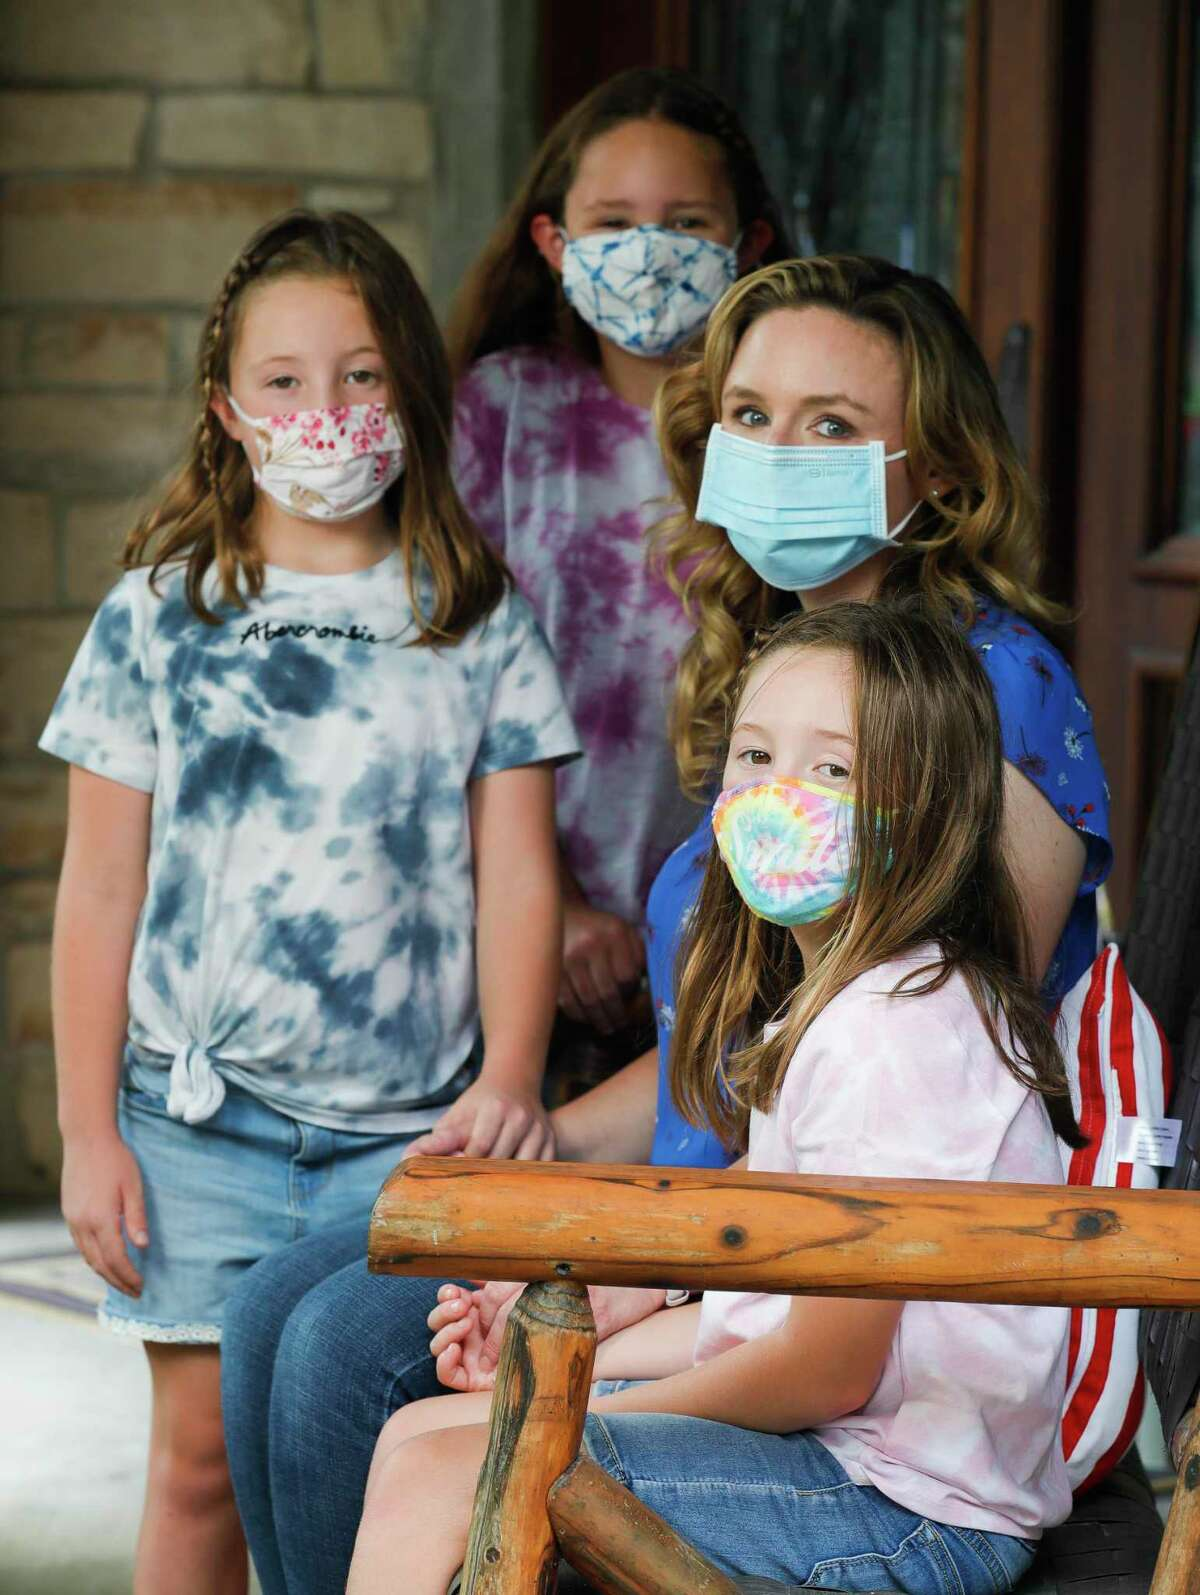 Tricia Danto, second from right, will be applying for the newly announced limited virtual program for her daughters, Lucy, top, Ellie, left, and Abbie to attend this school year. Tricia, along with her seven-year-old daughter are both immunocompromised, is concerned about the family's safety as in-person school begins.